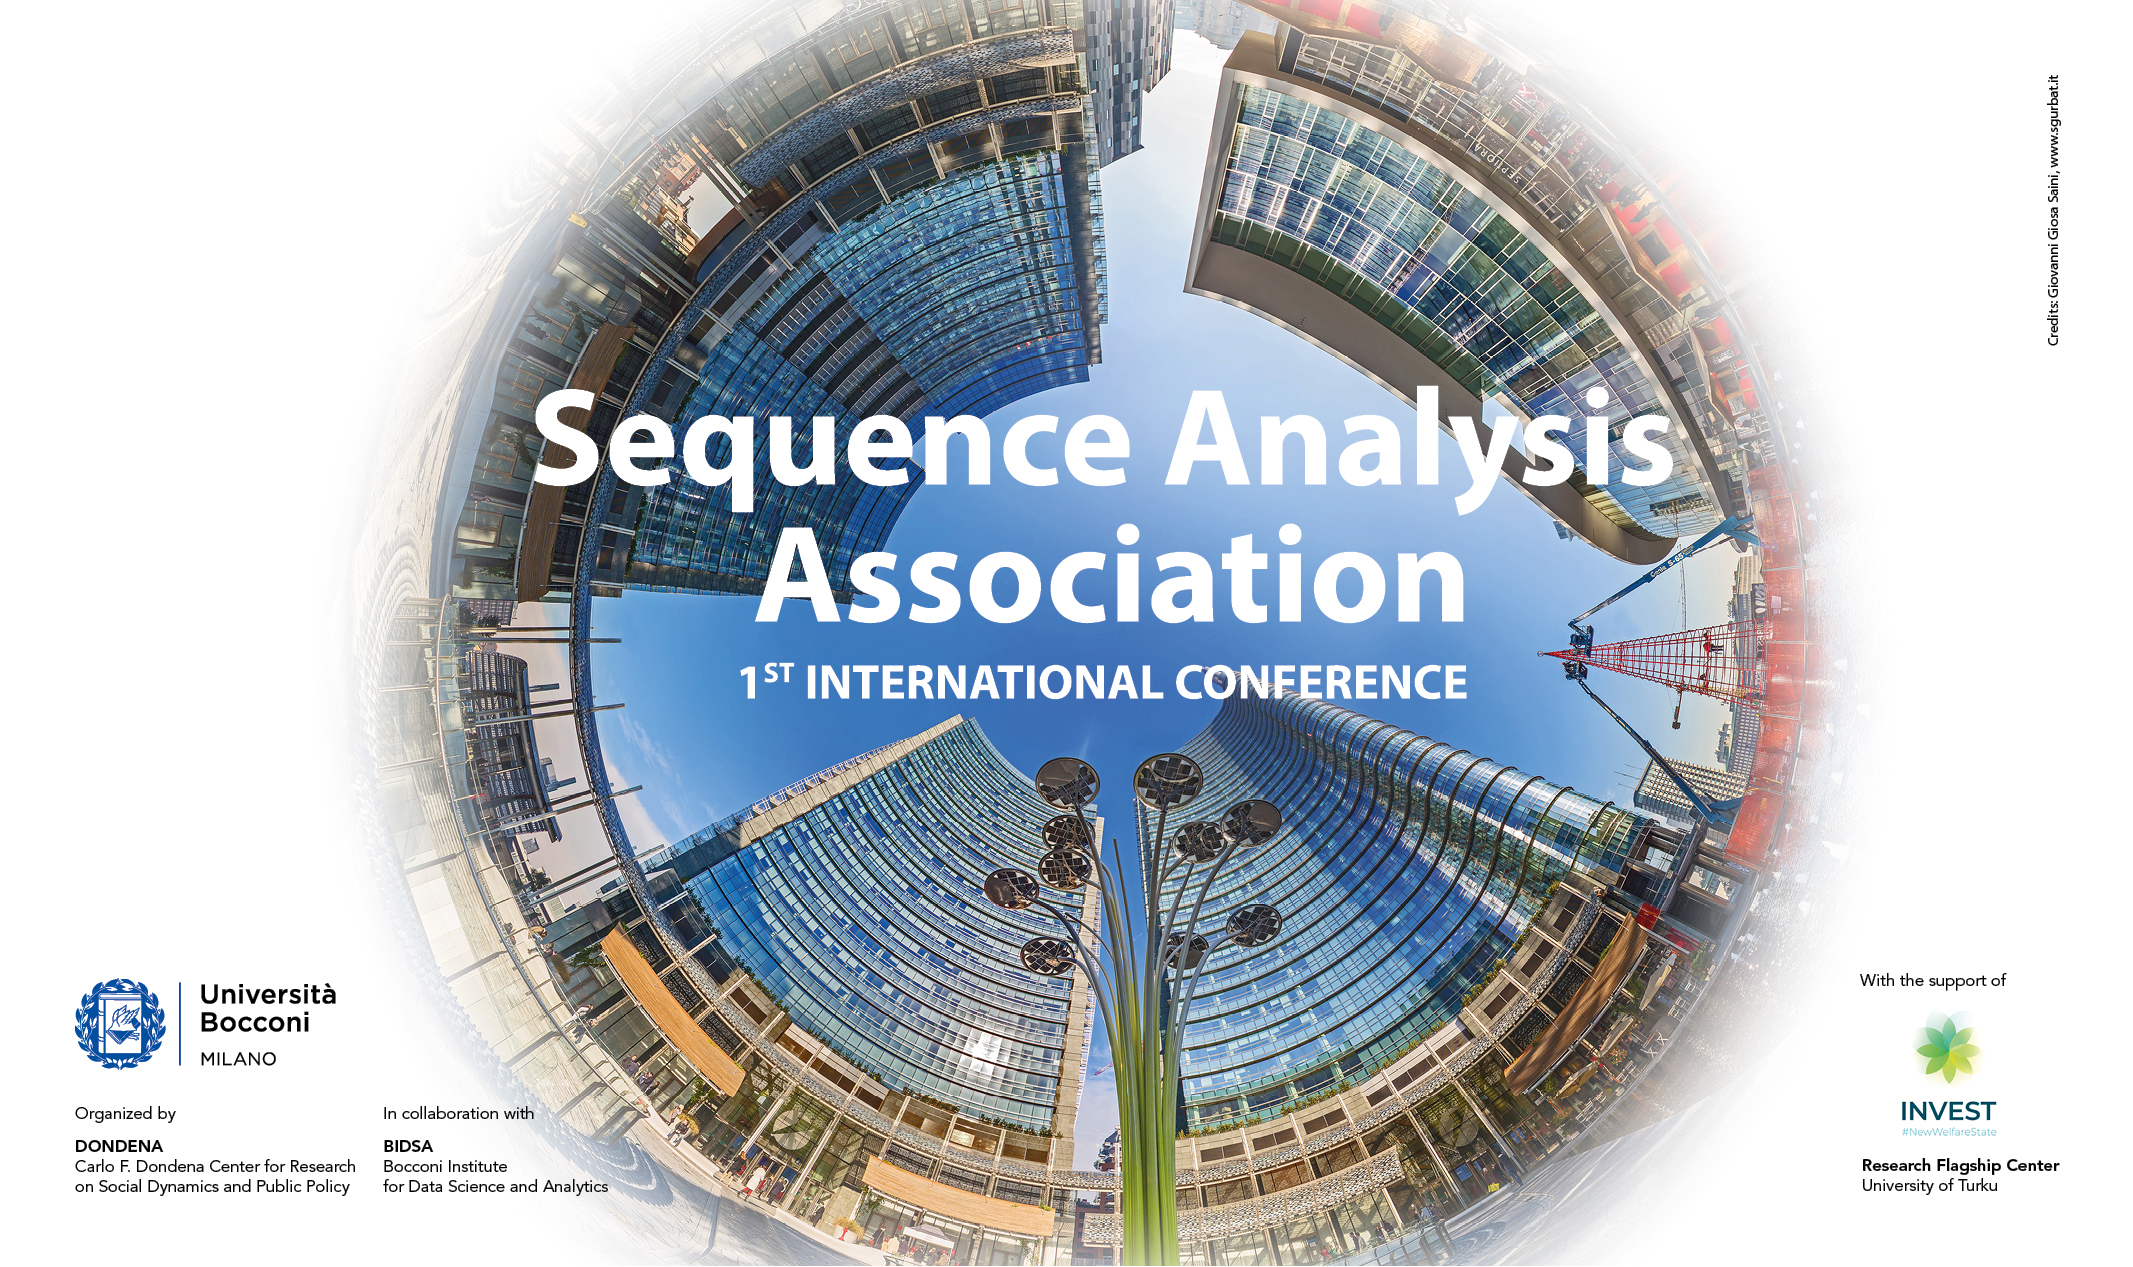 1st International Conference of Sequence Analysis Association